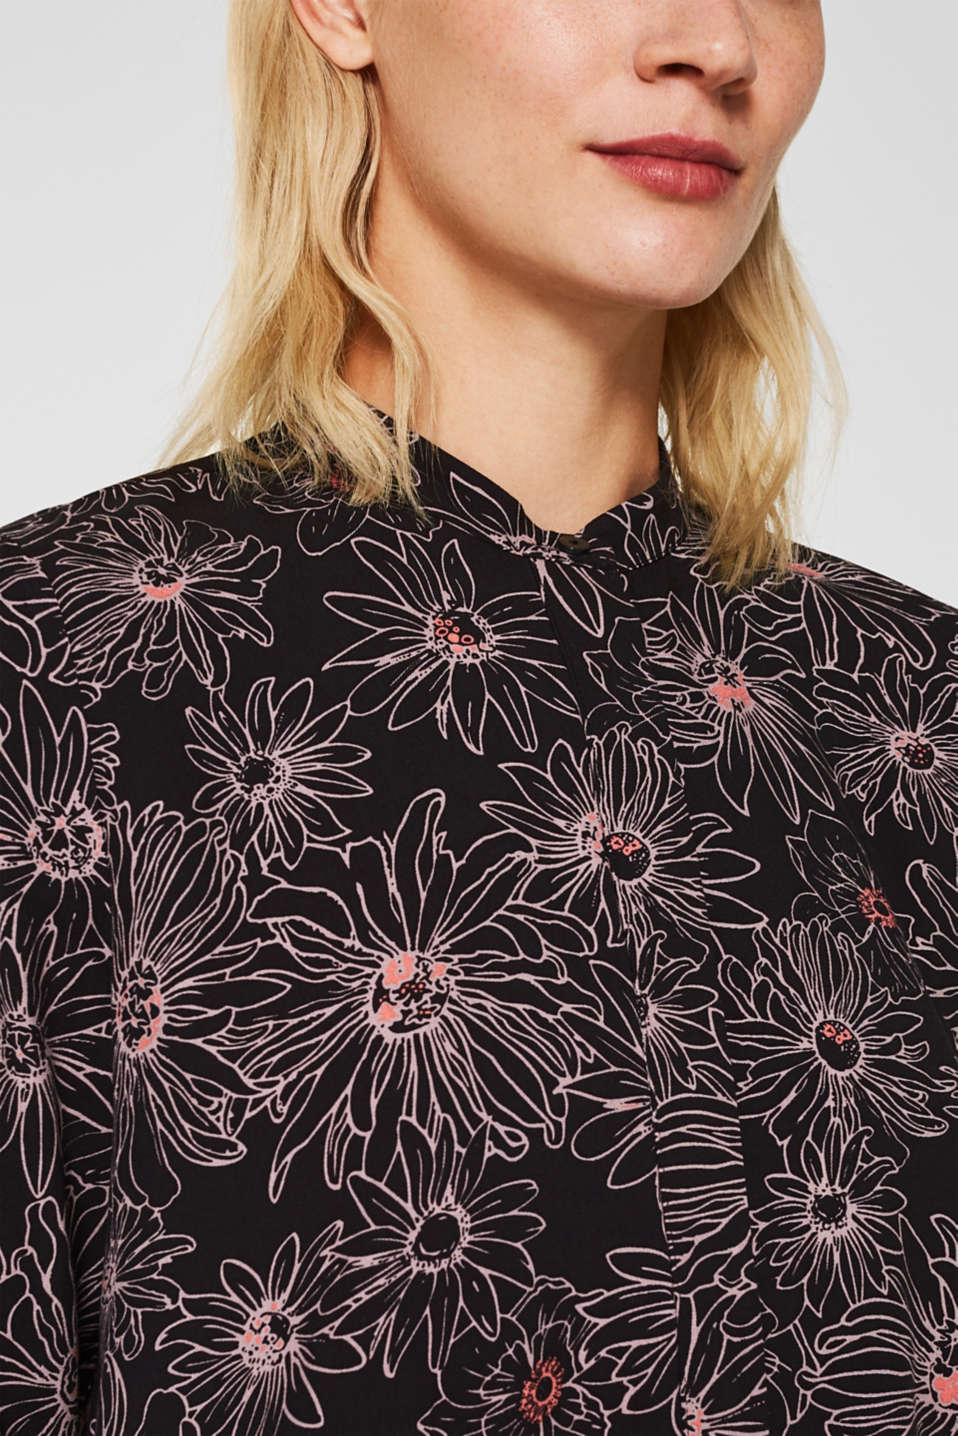 Slip-on blouse with a print and band collar, BLACK 3, detail image number 2